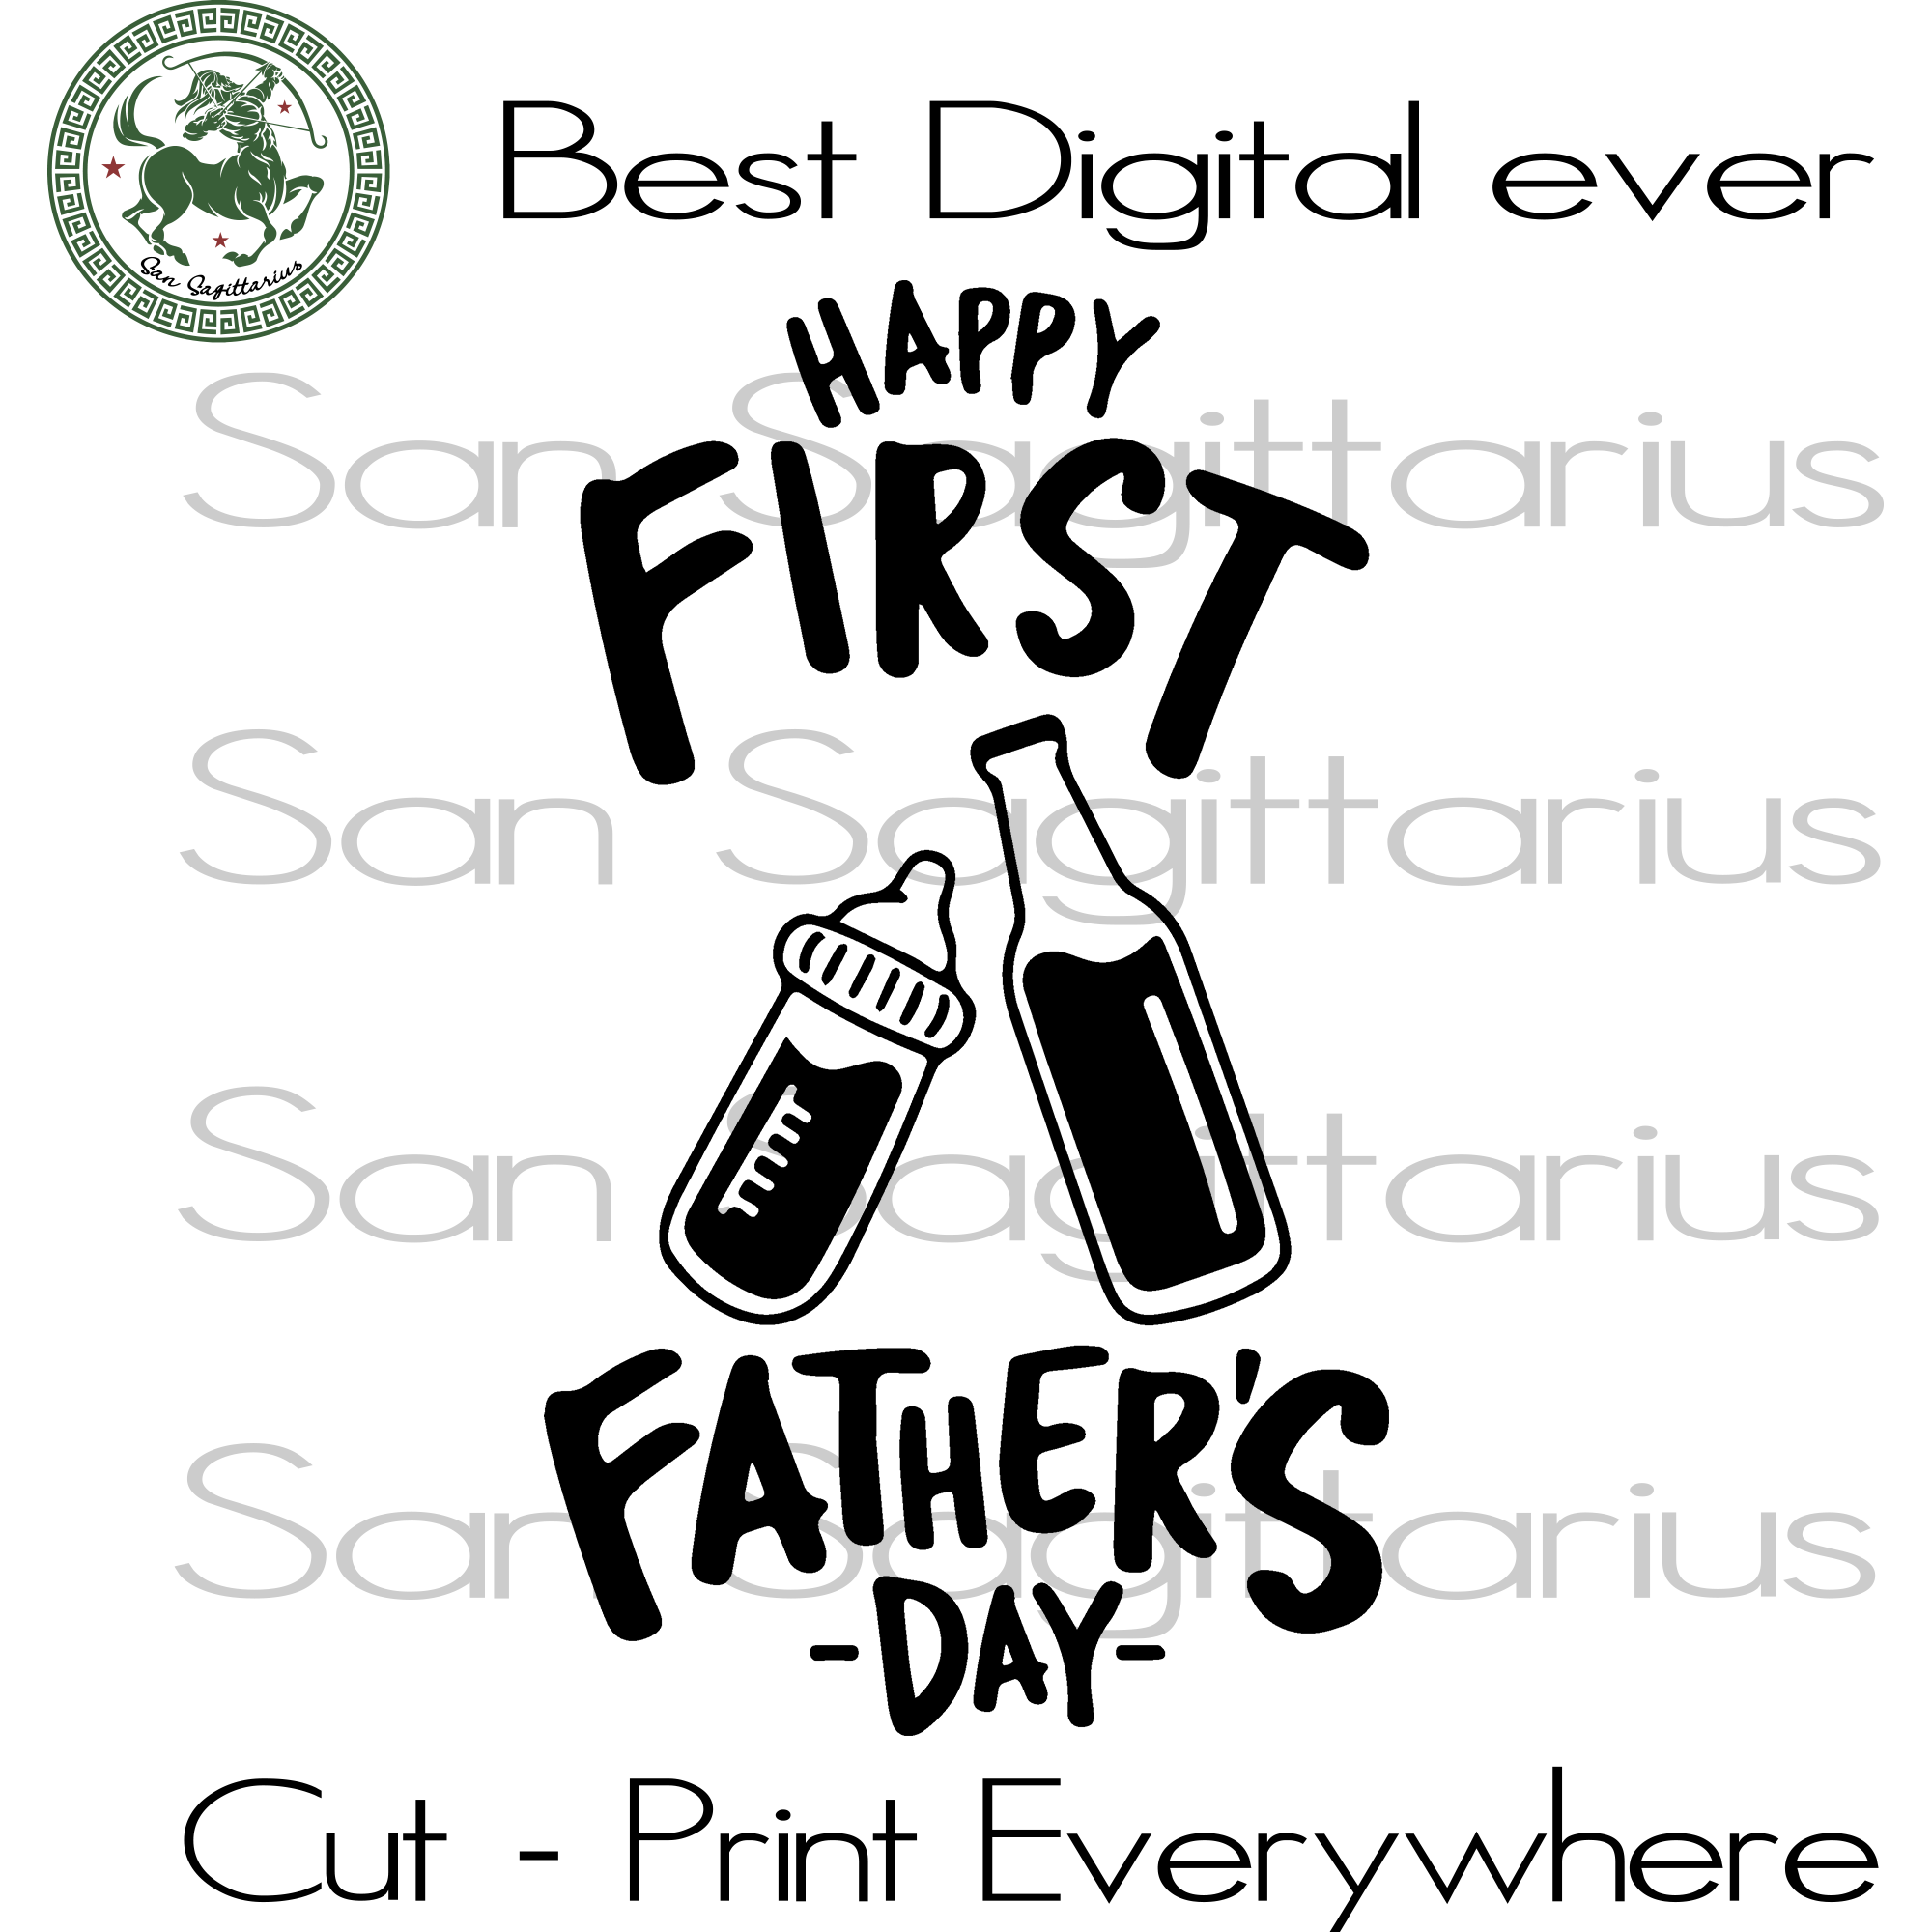 Free I love you daddy song lyrics: Happy First Father S Day Dad Svg Dad Gift Svg Gift For Dad Dad Bir San Sagittarius SVG, PNG, EPS, DXF File